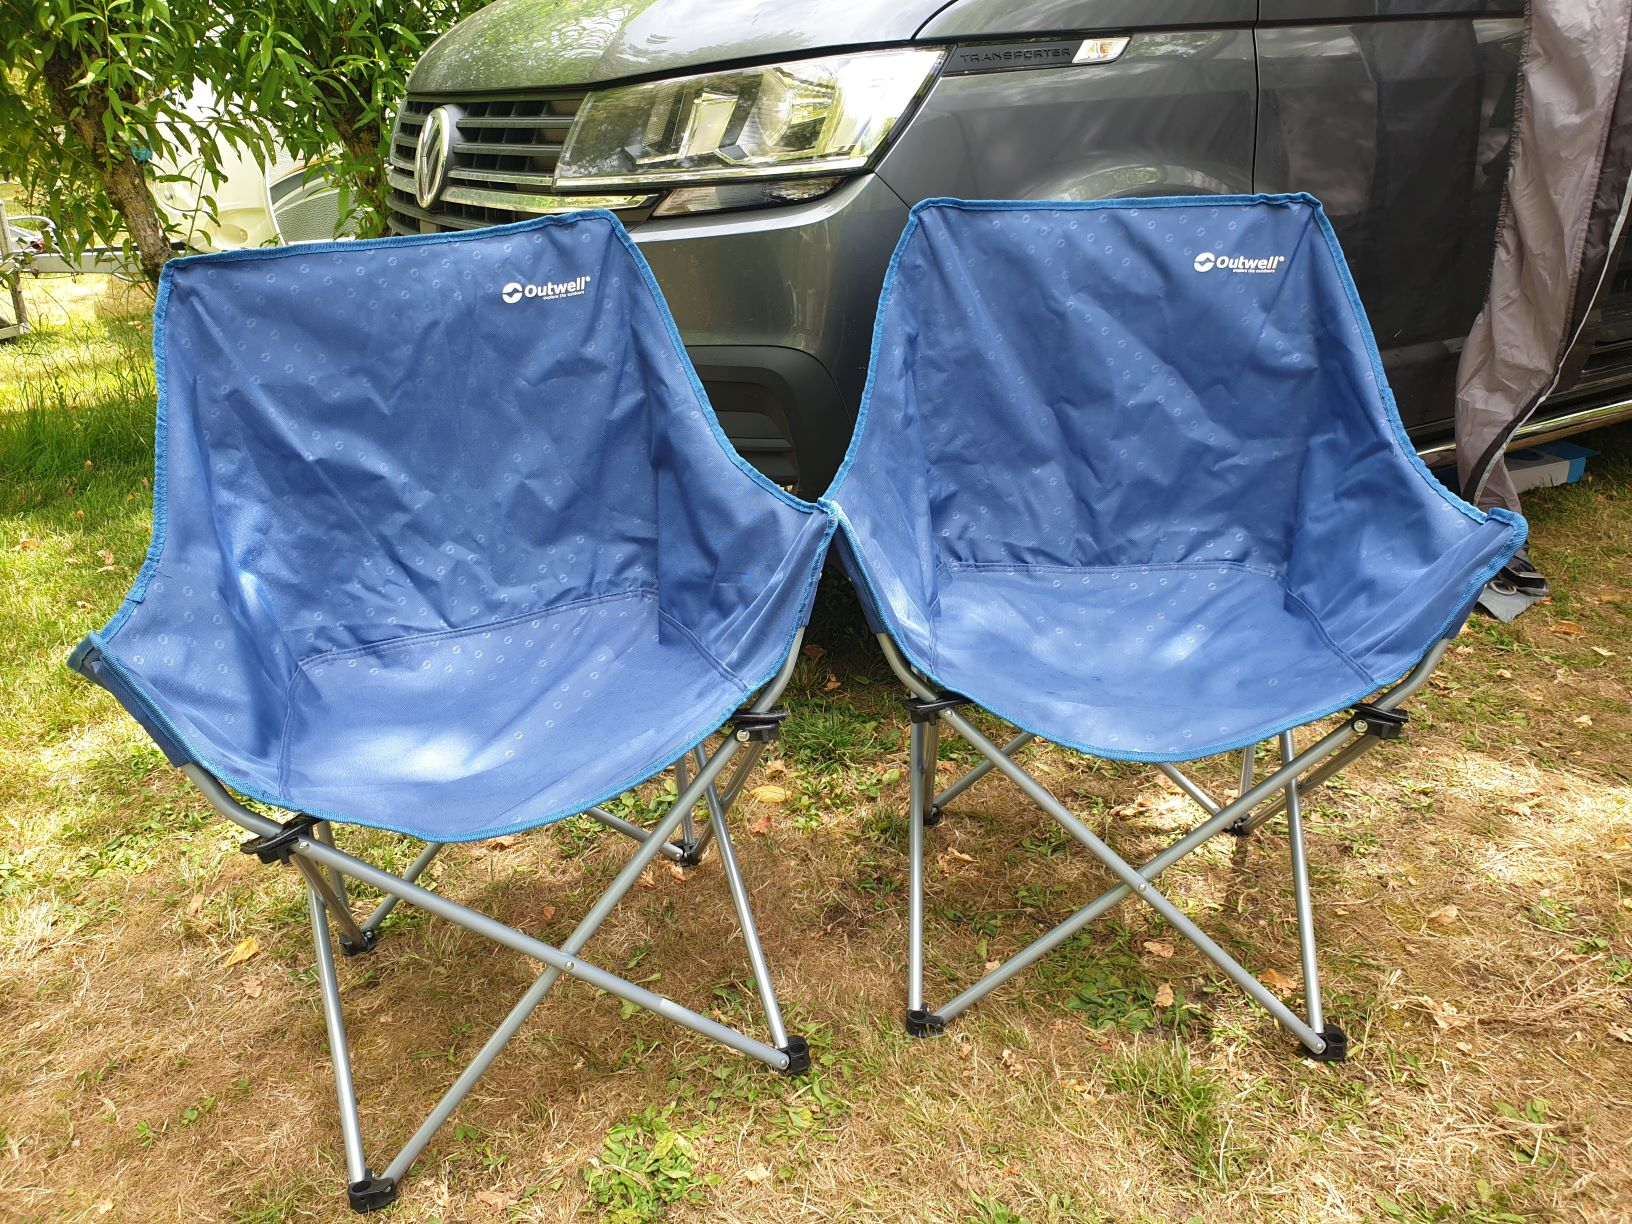 outwell sevilla chairs